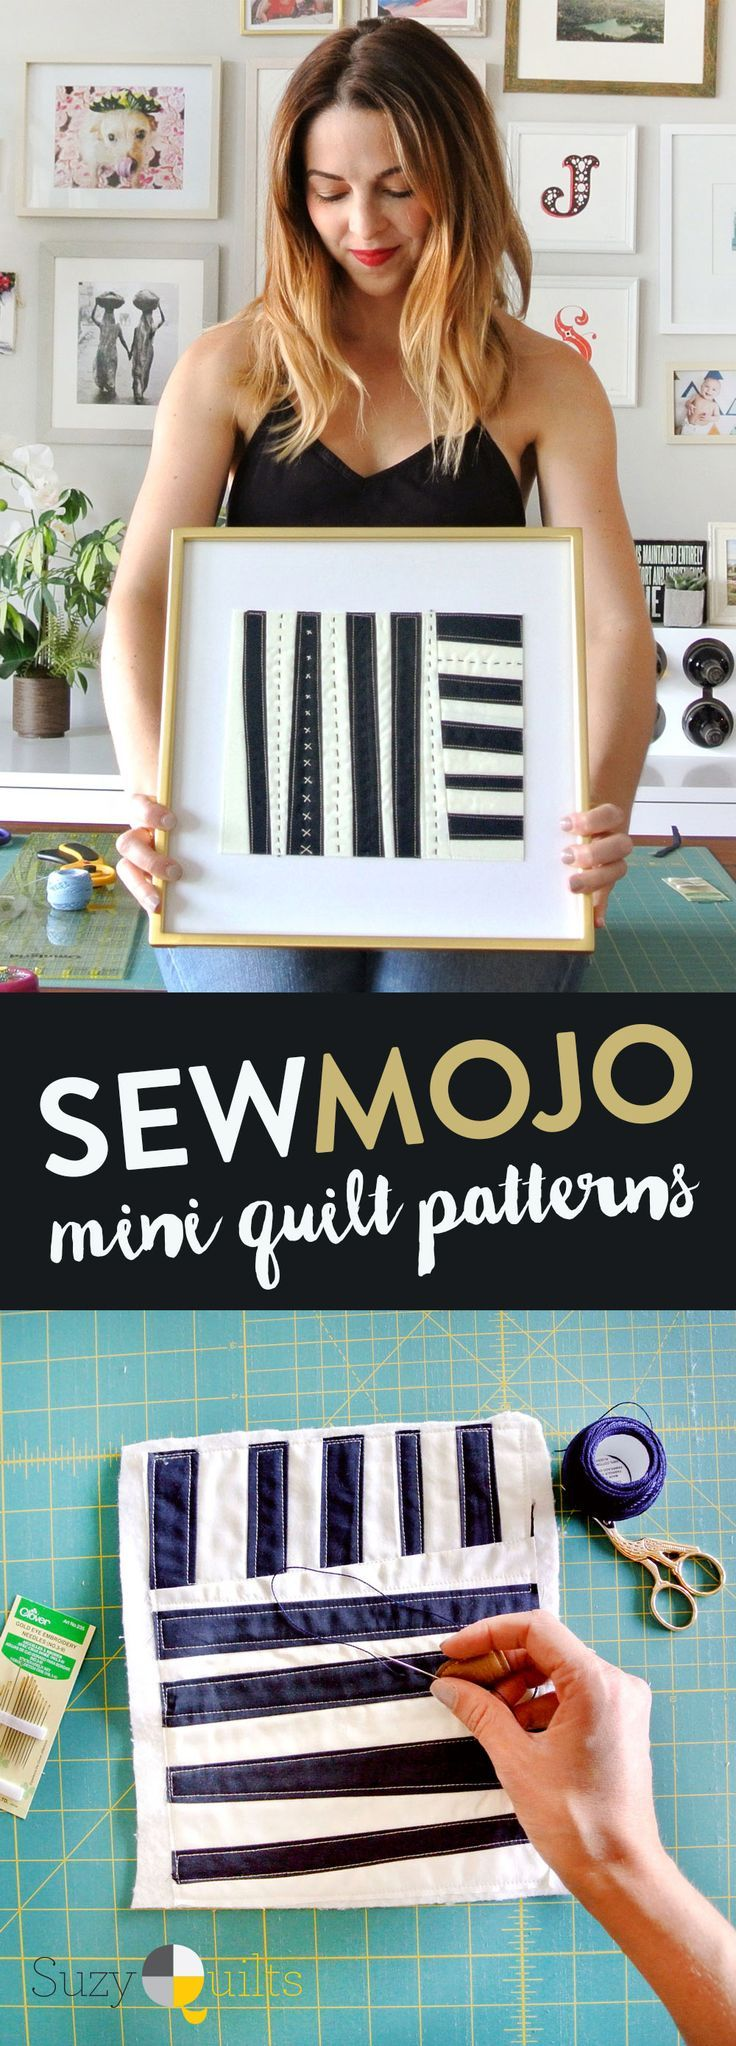 Whether you are a brand new quilter, a seasoned sewist, a textiles artist with designer's block or even a crafter looking for a fun, simple project, this Sew Mojo mini quilt series is perfect for you. The average quilter can make one of these minis in an